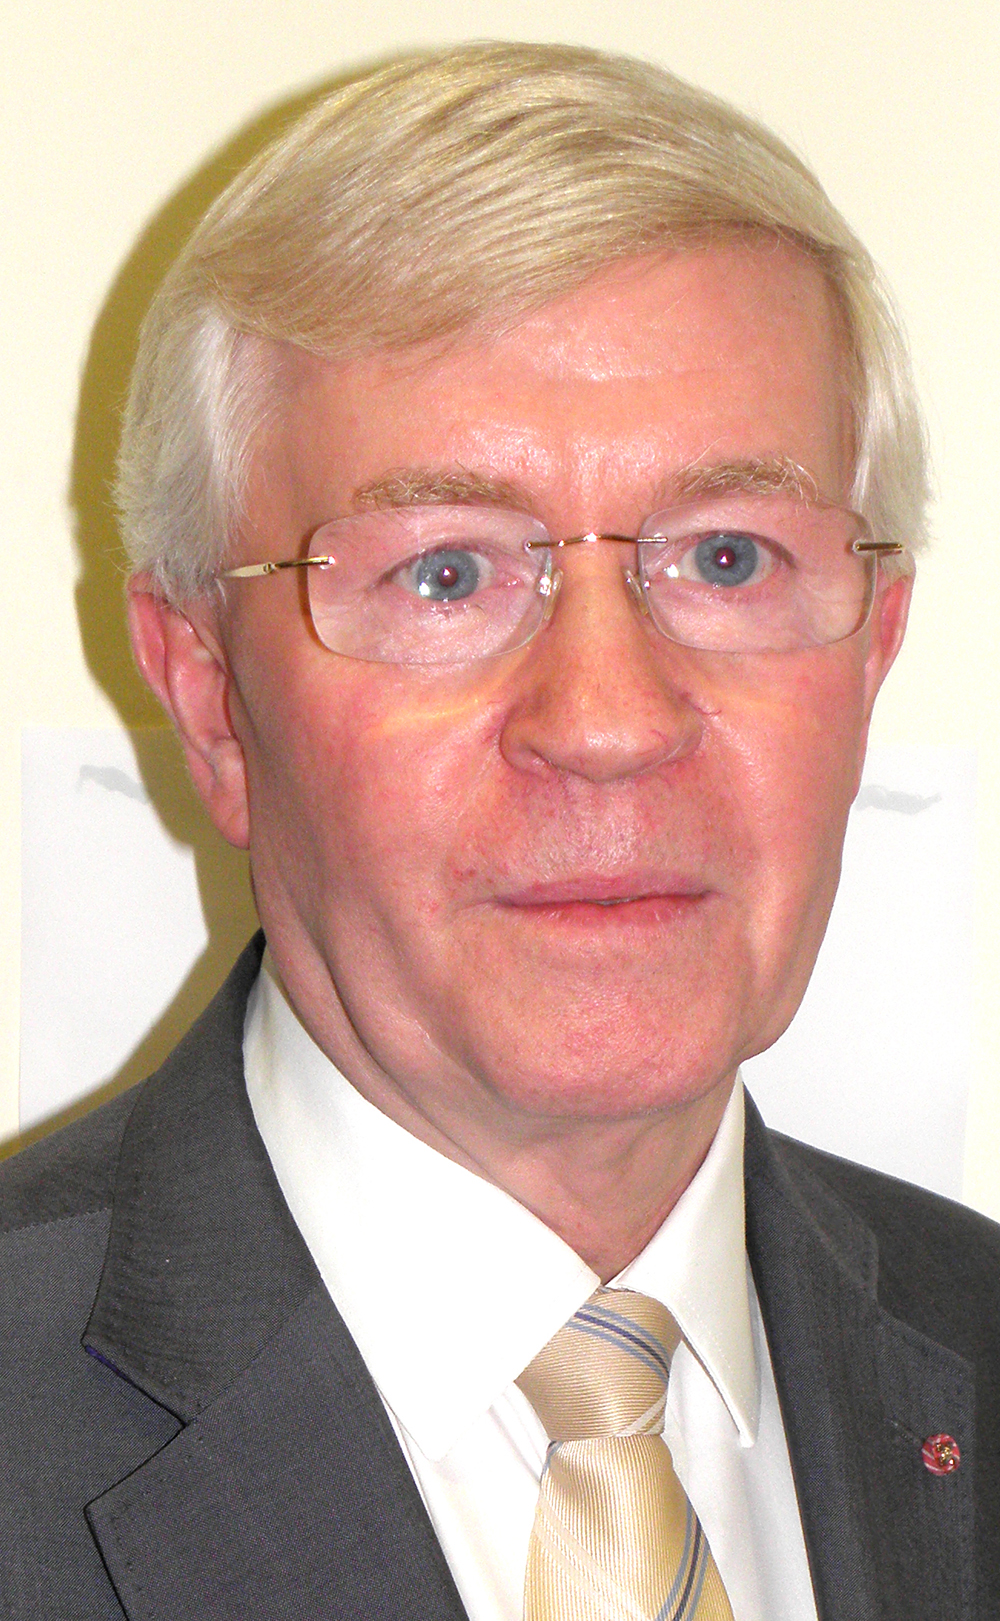 Aycliffe Professor Appointed New NHS Trust Chairman